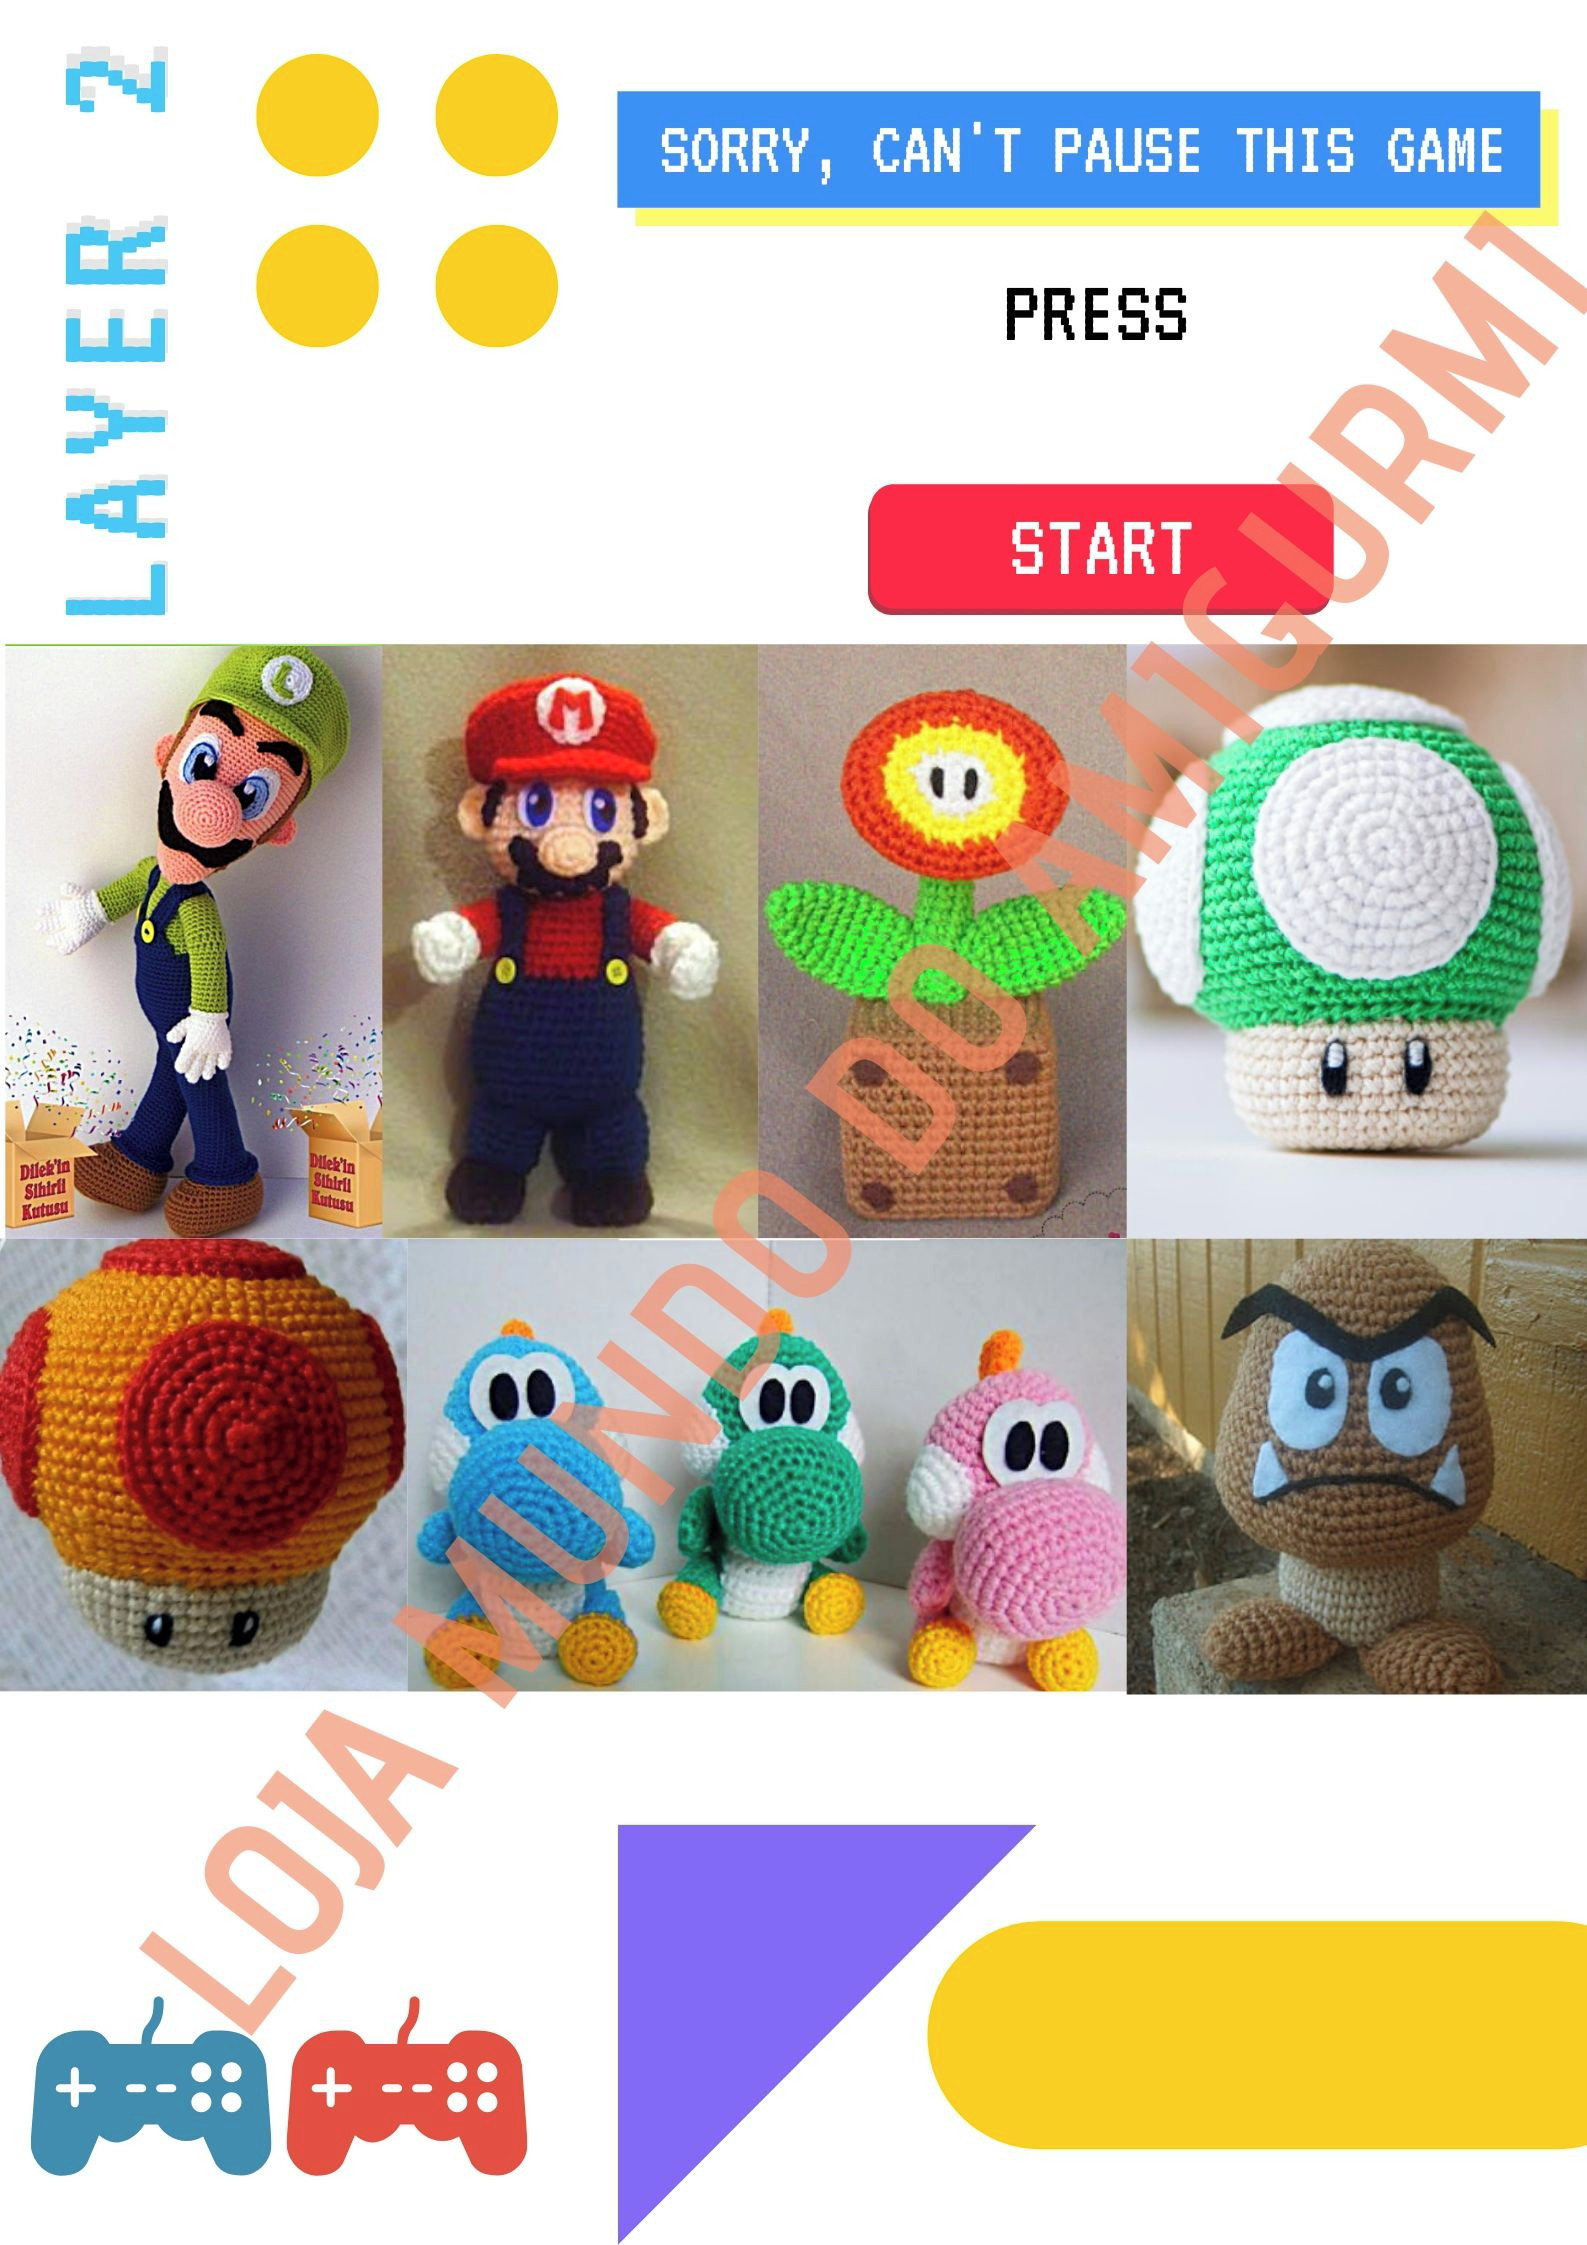 1Up Mushroom ( | Mario crochet, Crochet patterns amigurumi ... | 2245x1587